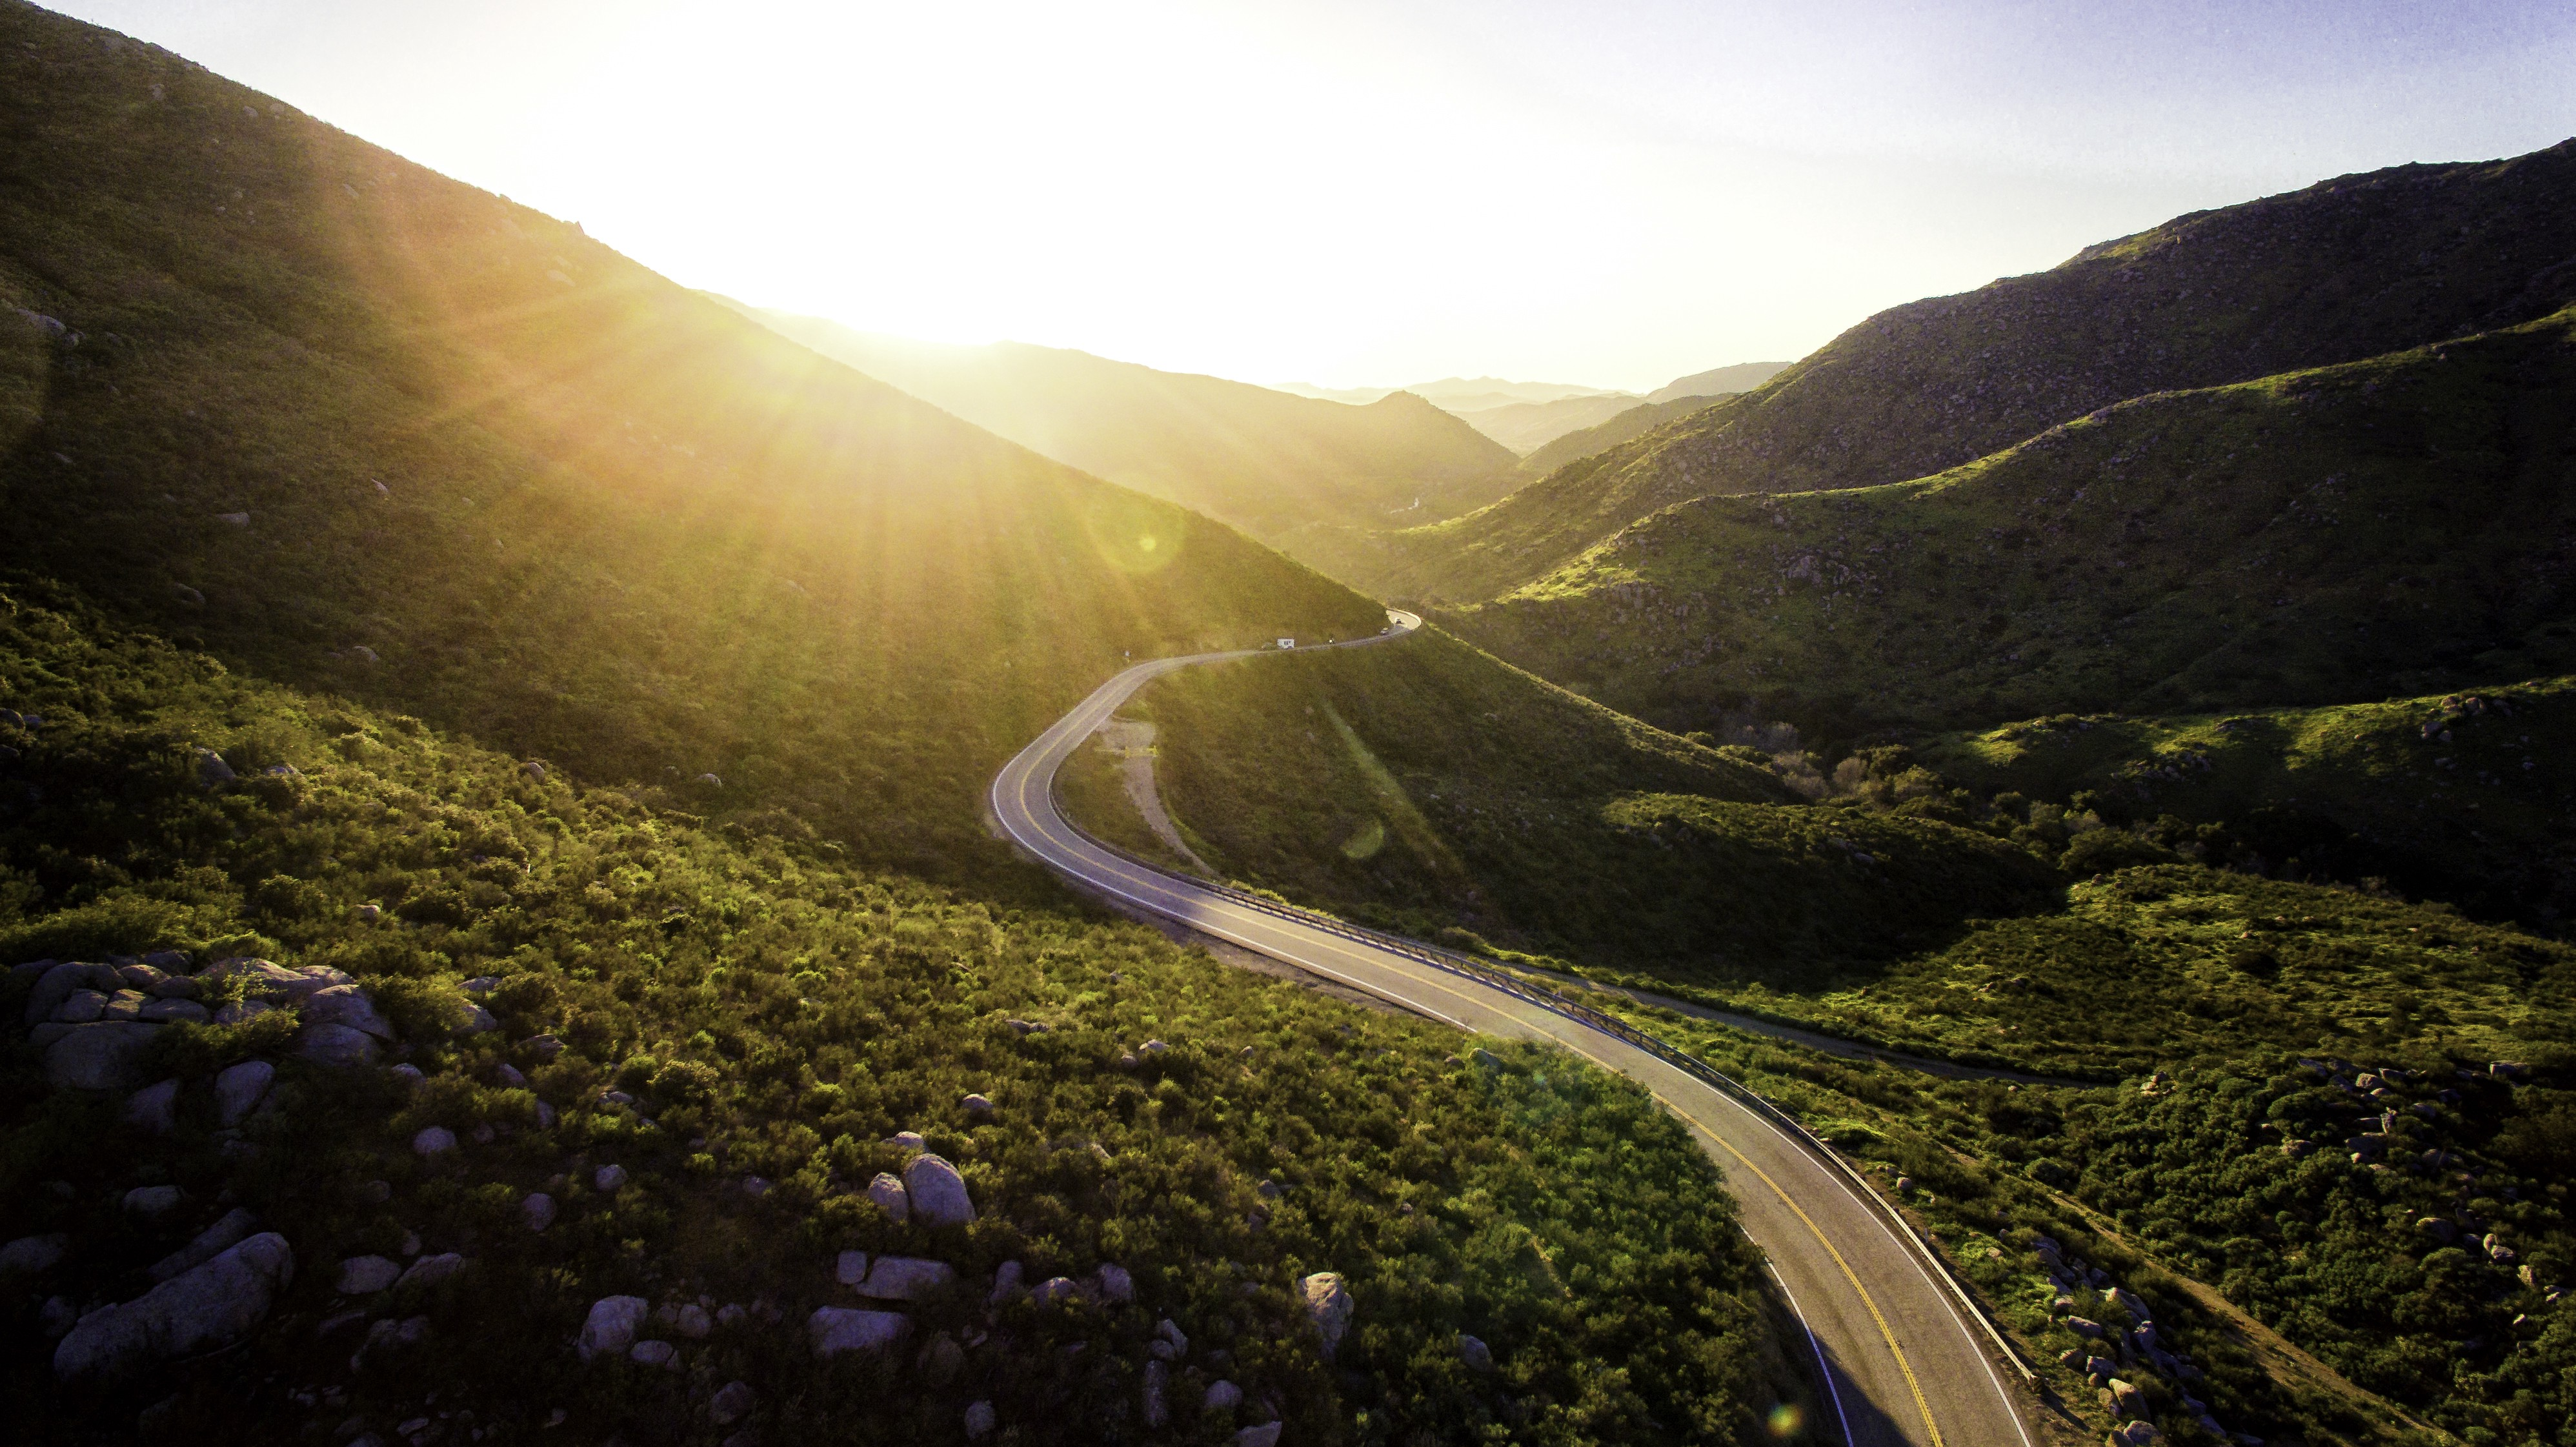 Winding road through sunlight hills and valleys